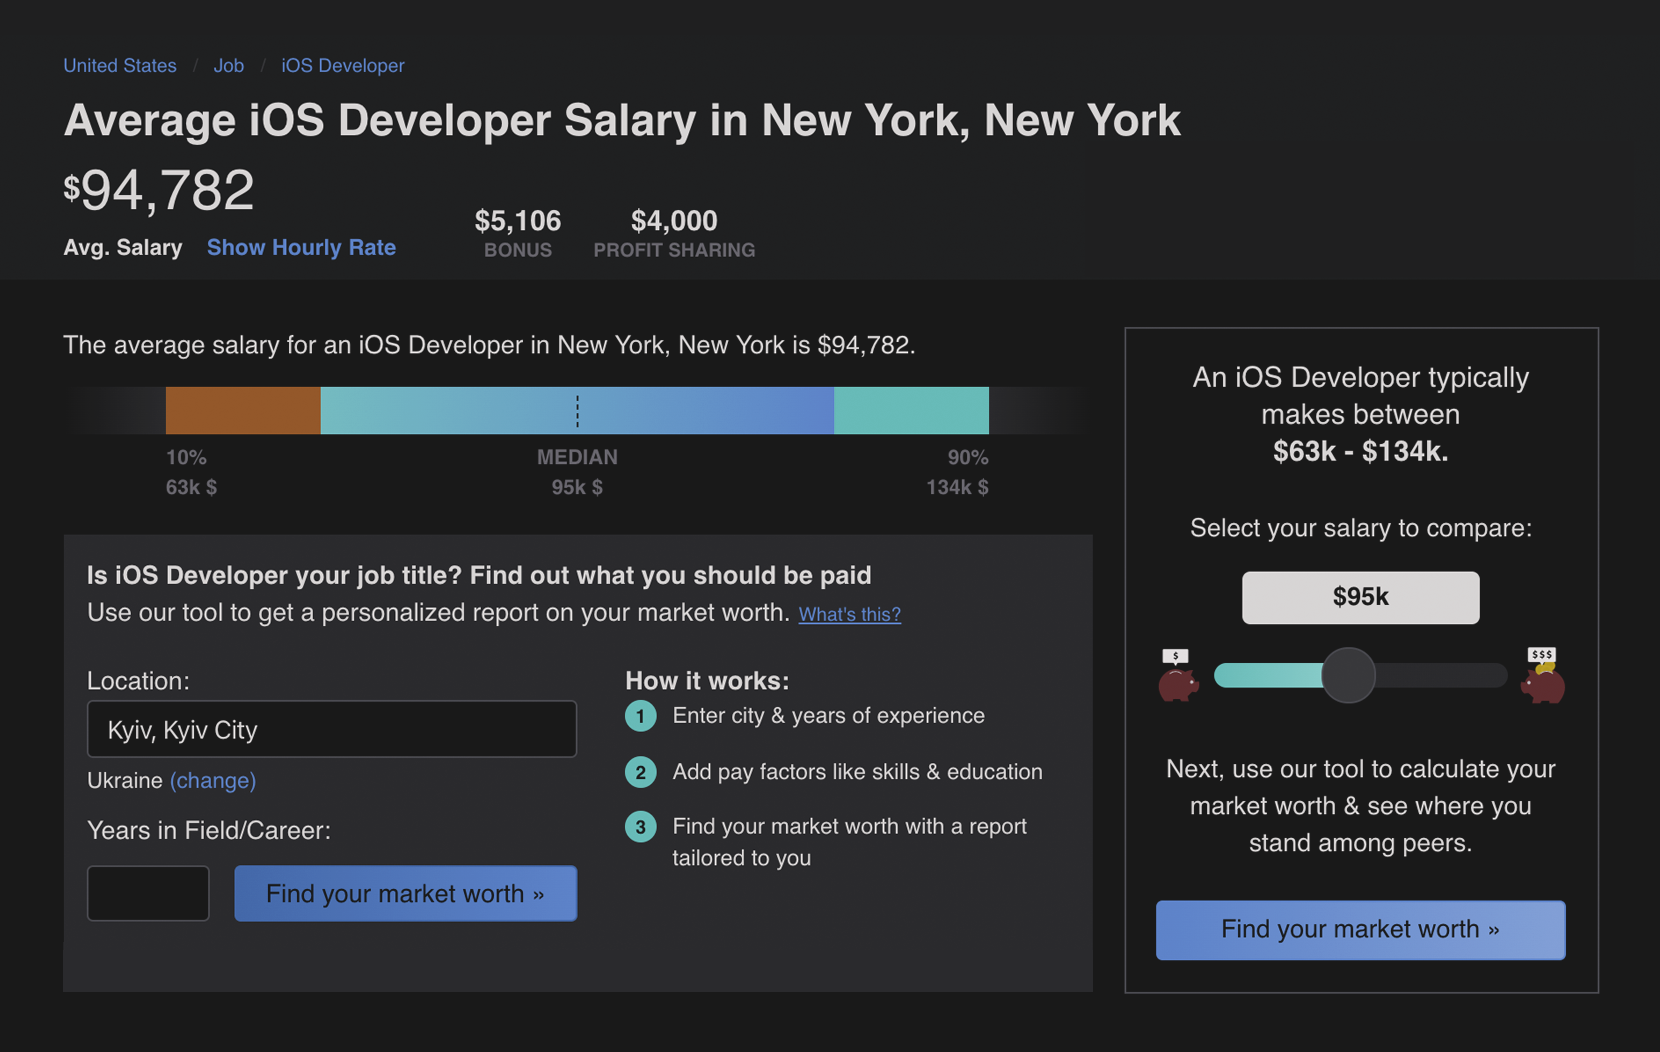 yearly salary for ios developers in New york